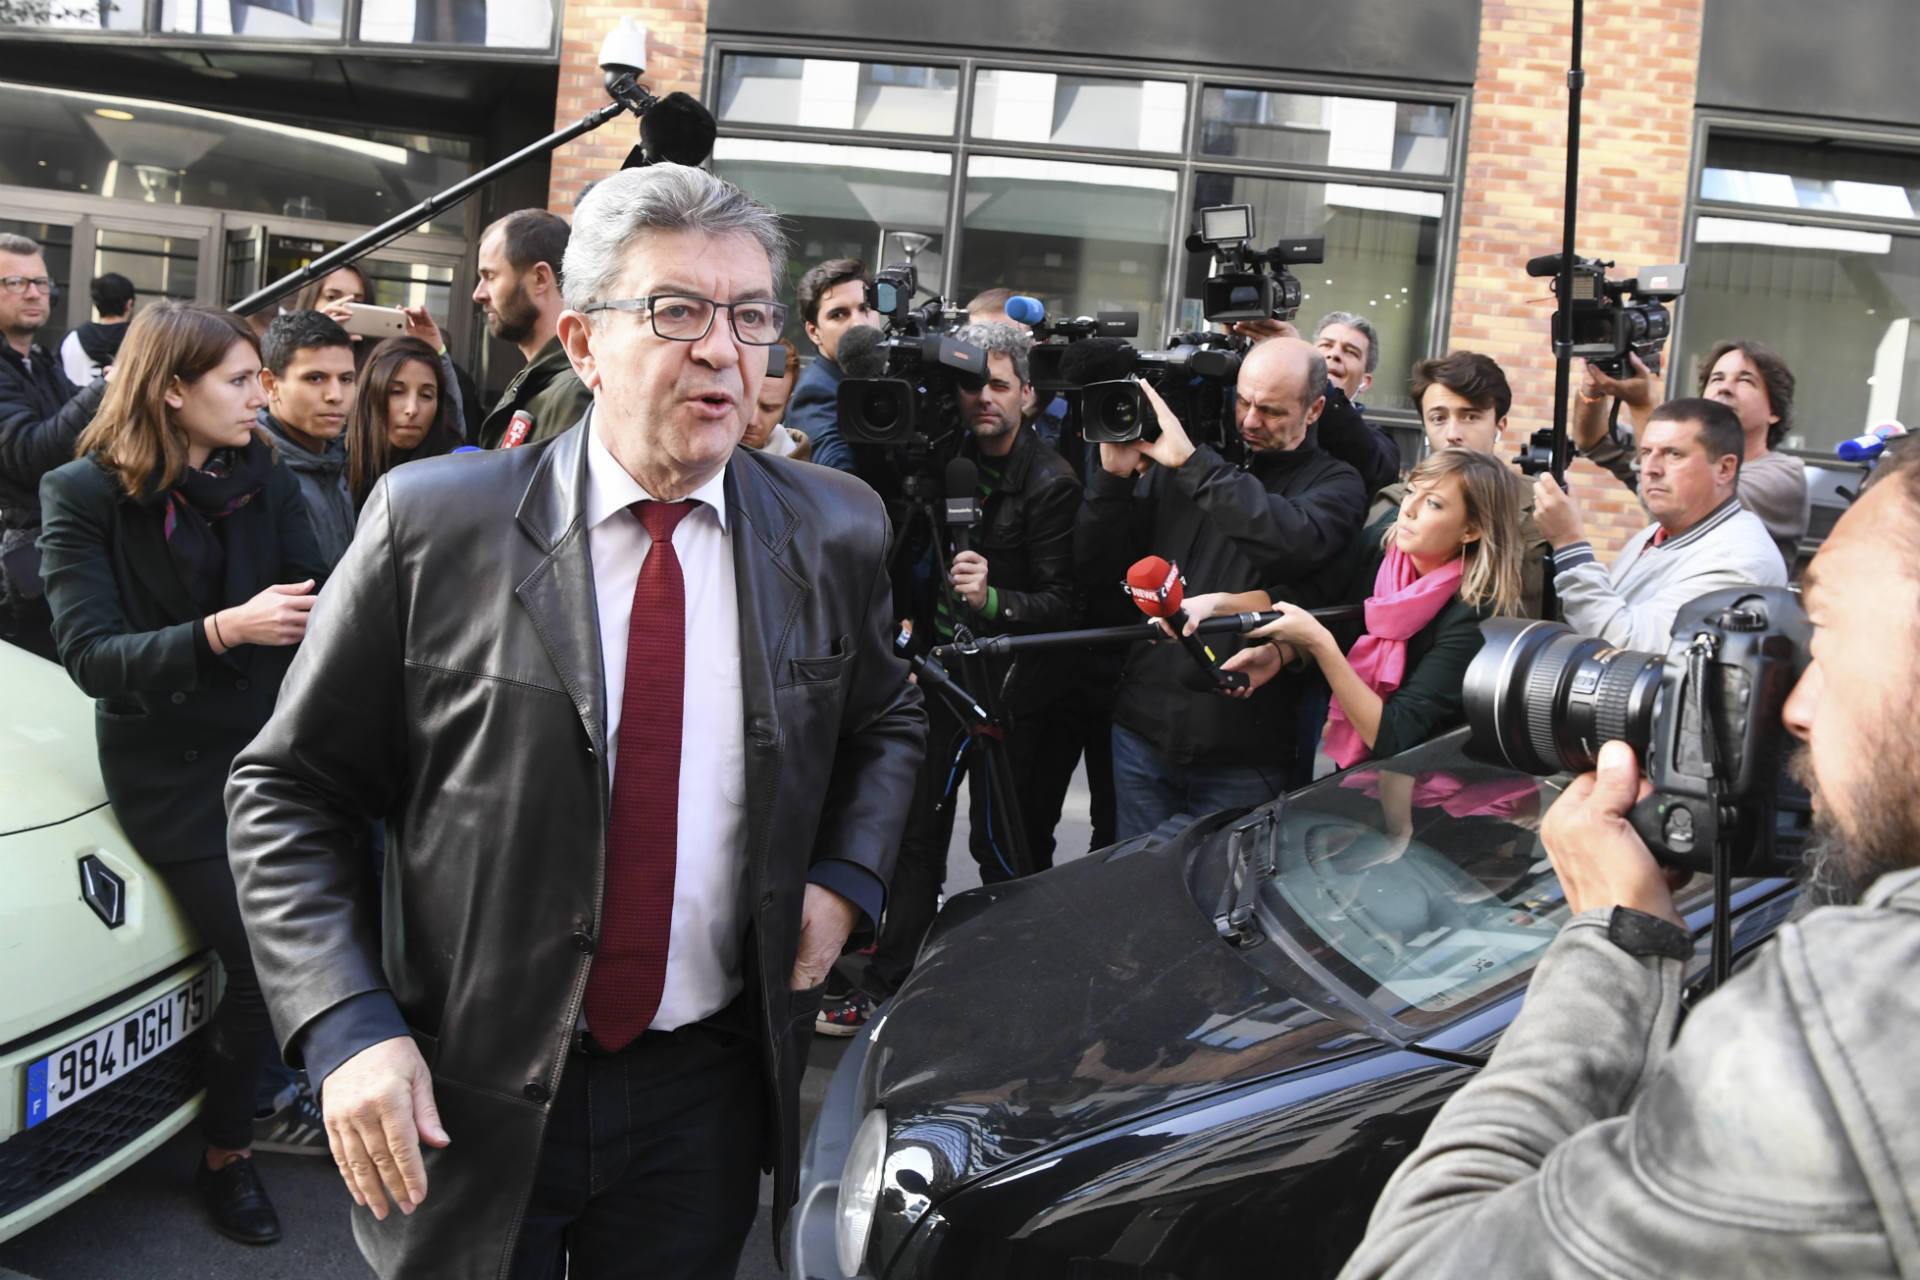 """Anti-corruption investigators raided the home and party headquarters of Jean-Luc Mélenchon, founder of far-left party France Unbowed, in October as part of twin enquiries into the misuse of European Parliament funds and funding irregularities during Mélenchon's 2017 presidential campaign. The left-wing leader physically resisted the police officers, pronouncing himself at once a victim and a sacred figure. """"I am the Republic,"""" he proclaimed, repeatedly asking the officers, """"Do you know who I am?"""" He and others at the office blocked the anti-corruption investigators, forcing them to leave without completing their inspection. Mélenchon tried to paint the raid as a political hit, but public opinion did not fall in his favour."""